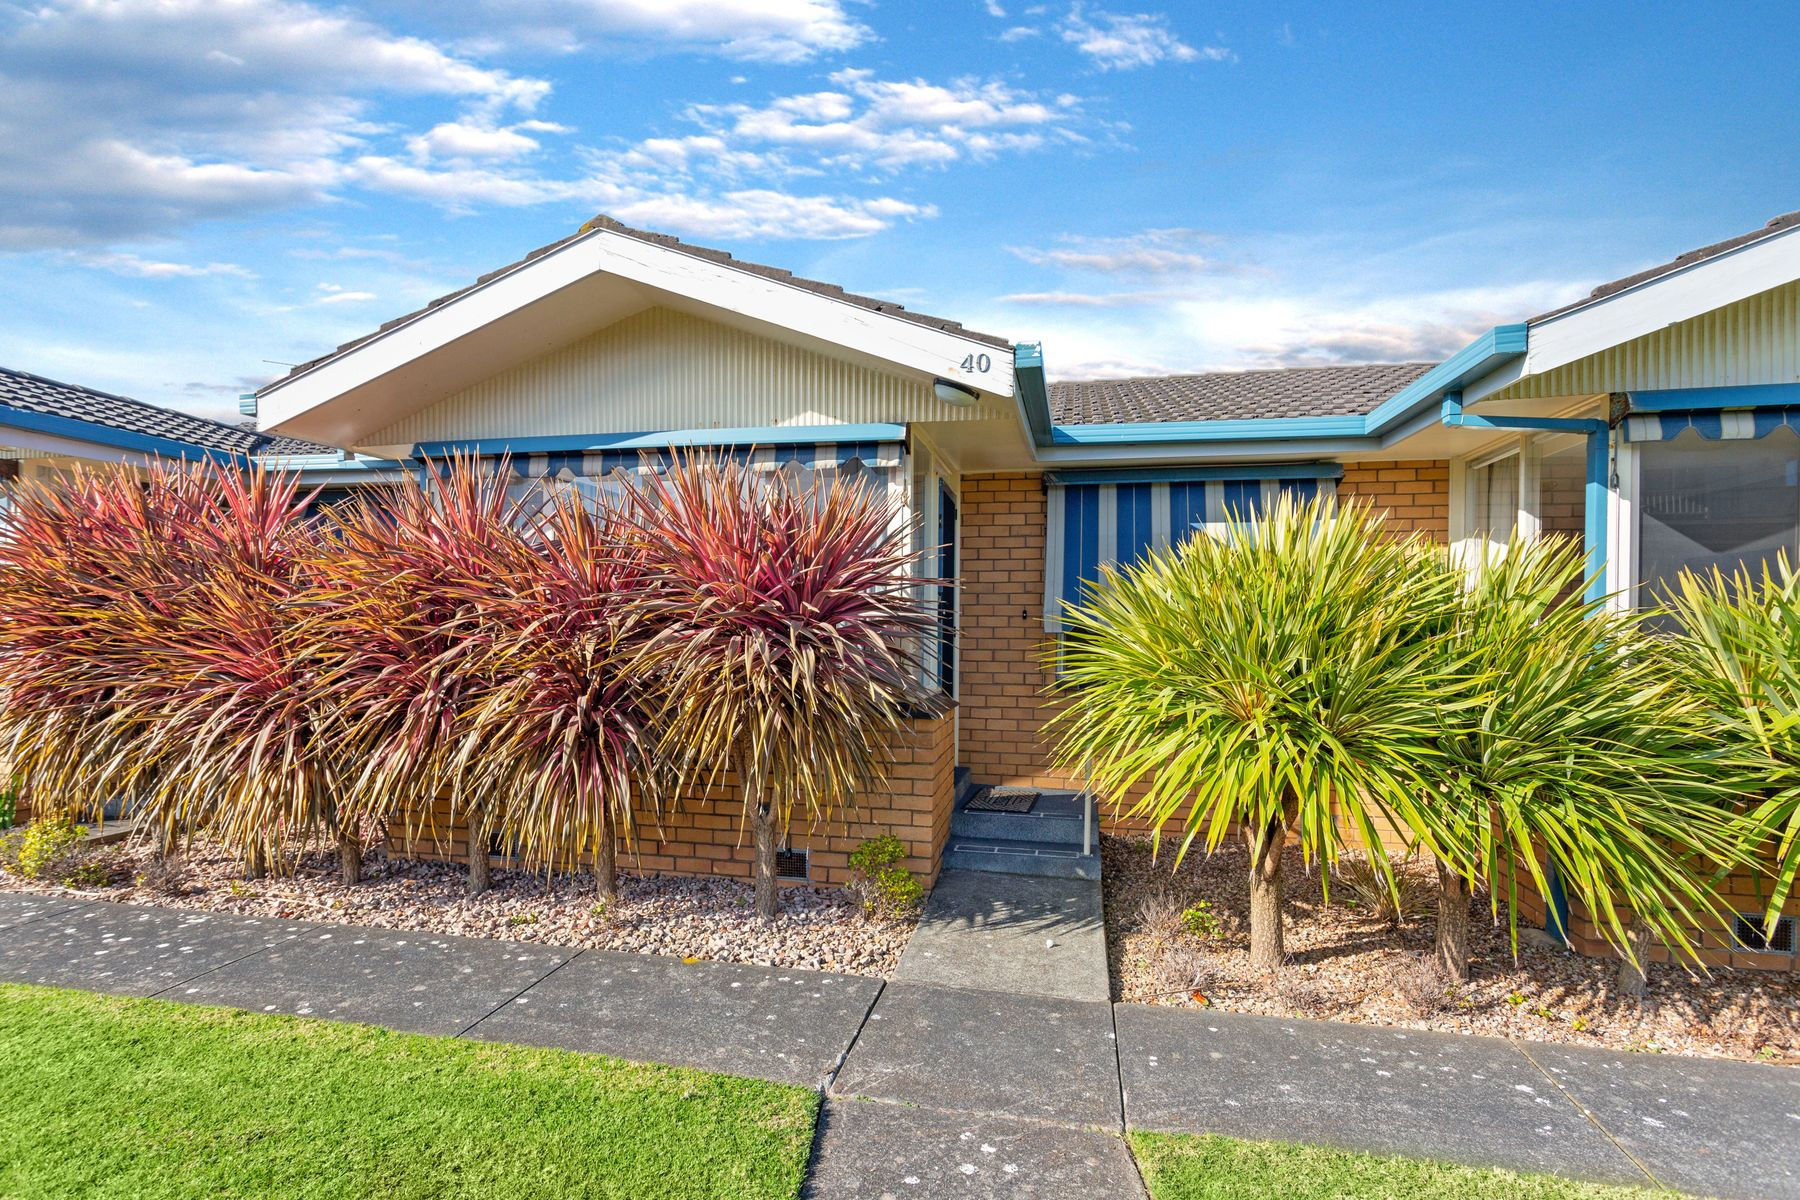 40/10 Marfell Road, Warrnambool, VIC 3280